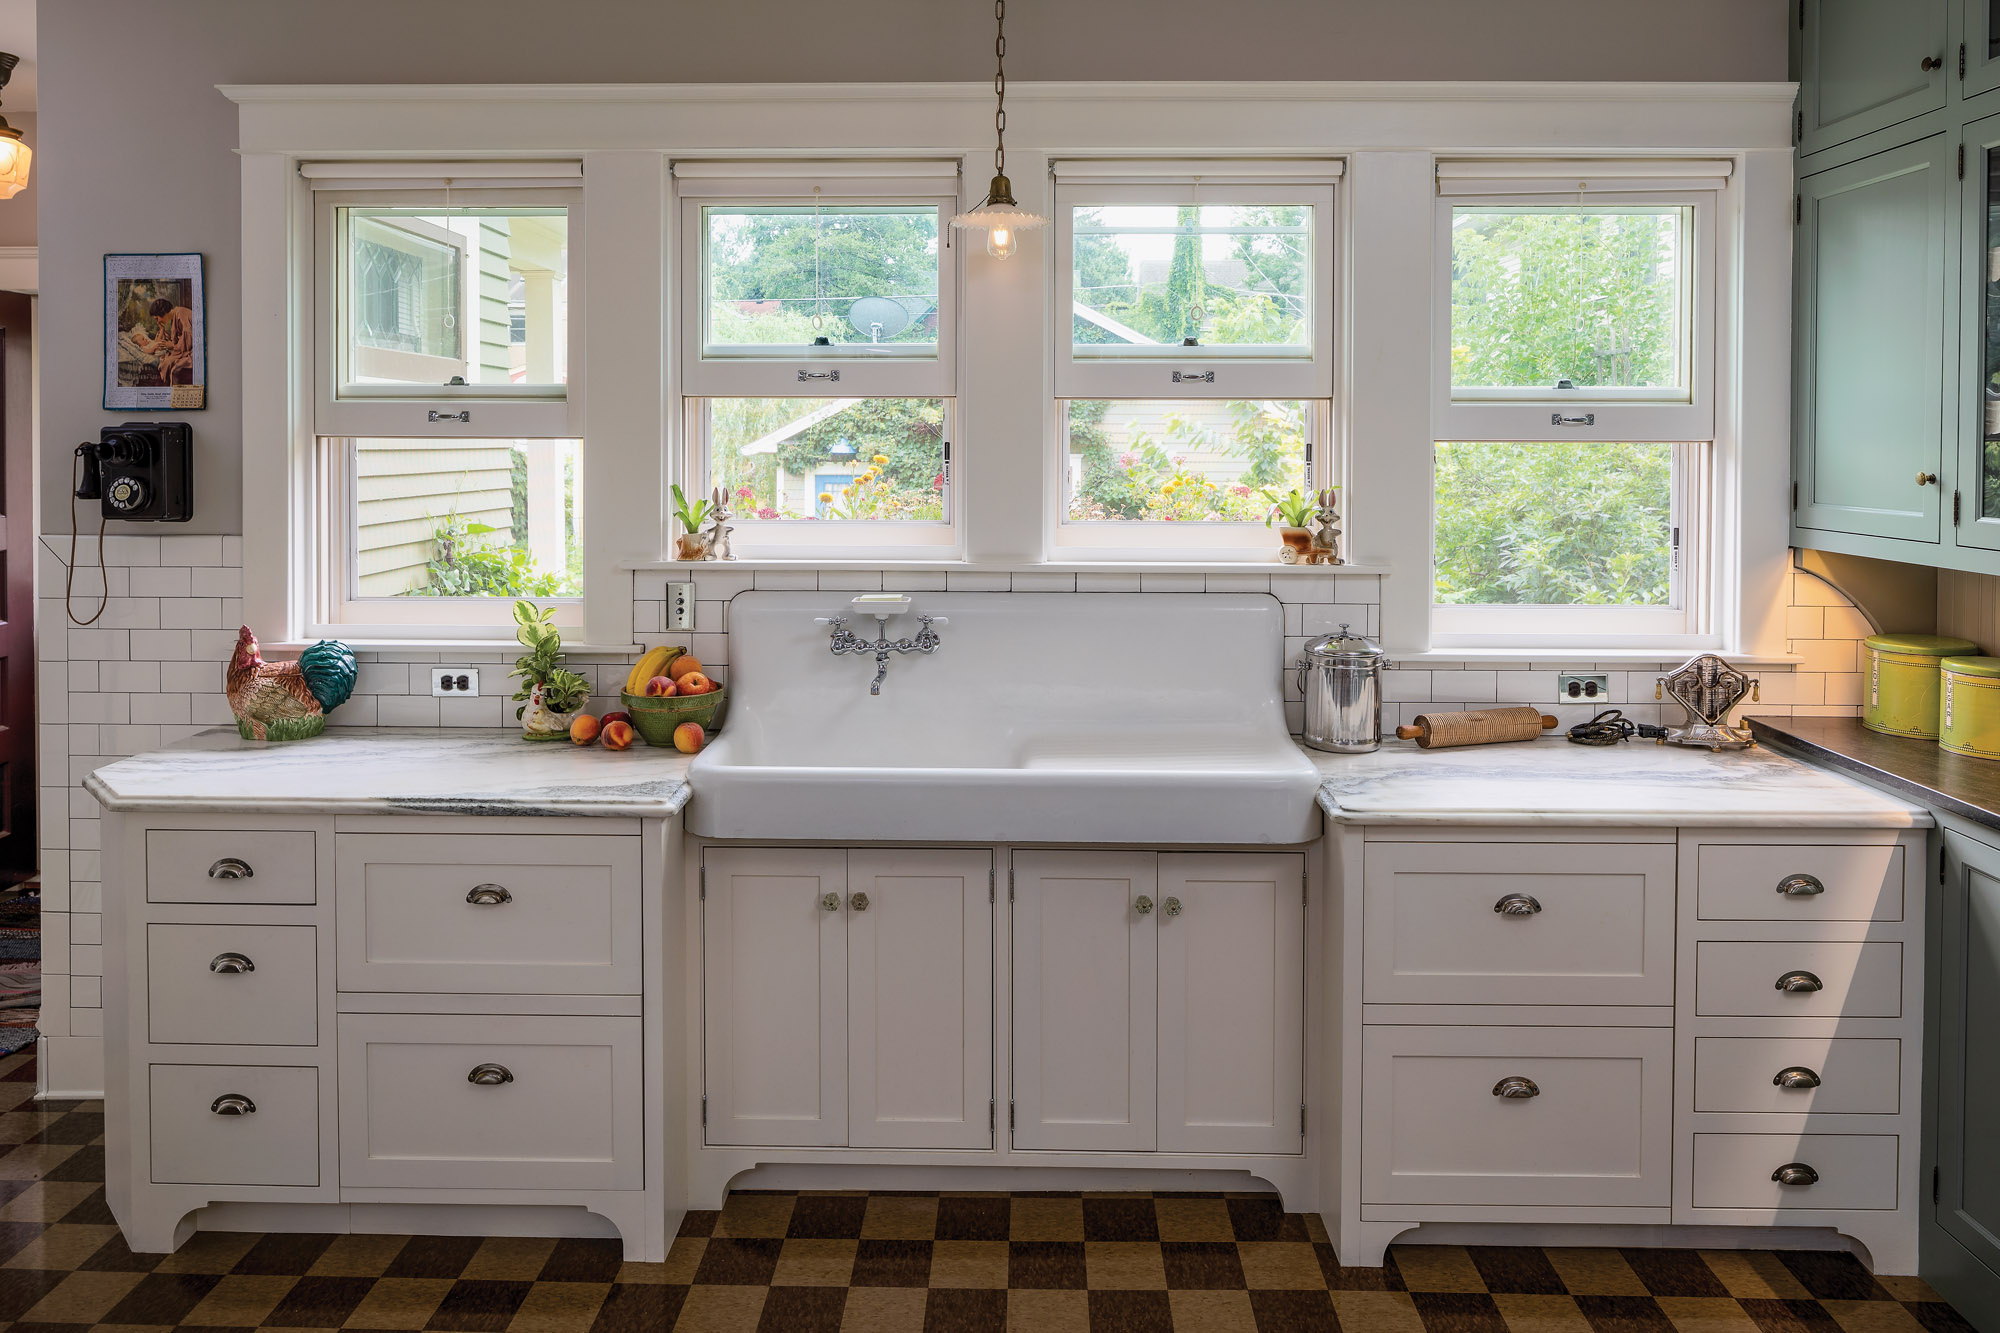 A New-old Kitchen for a 1912 Foursquare